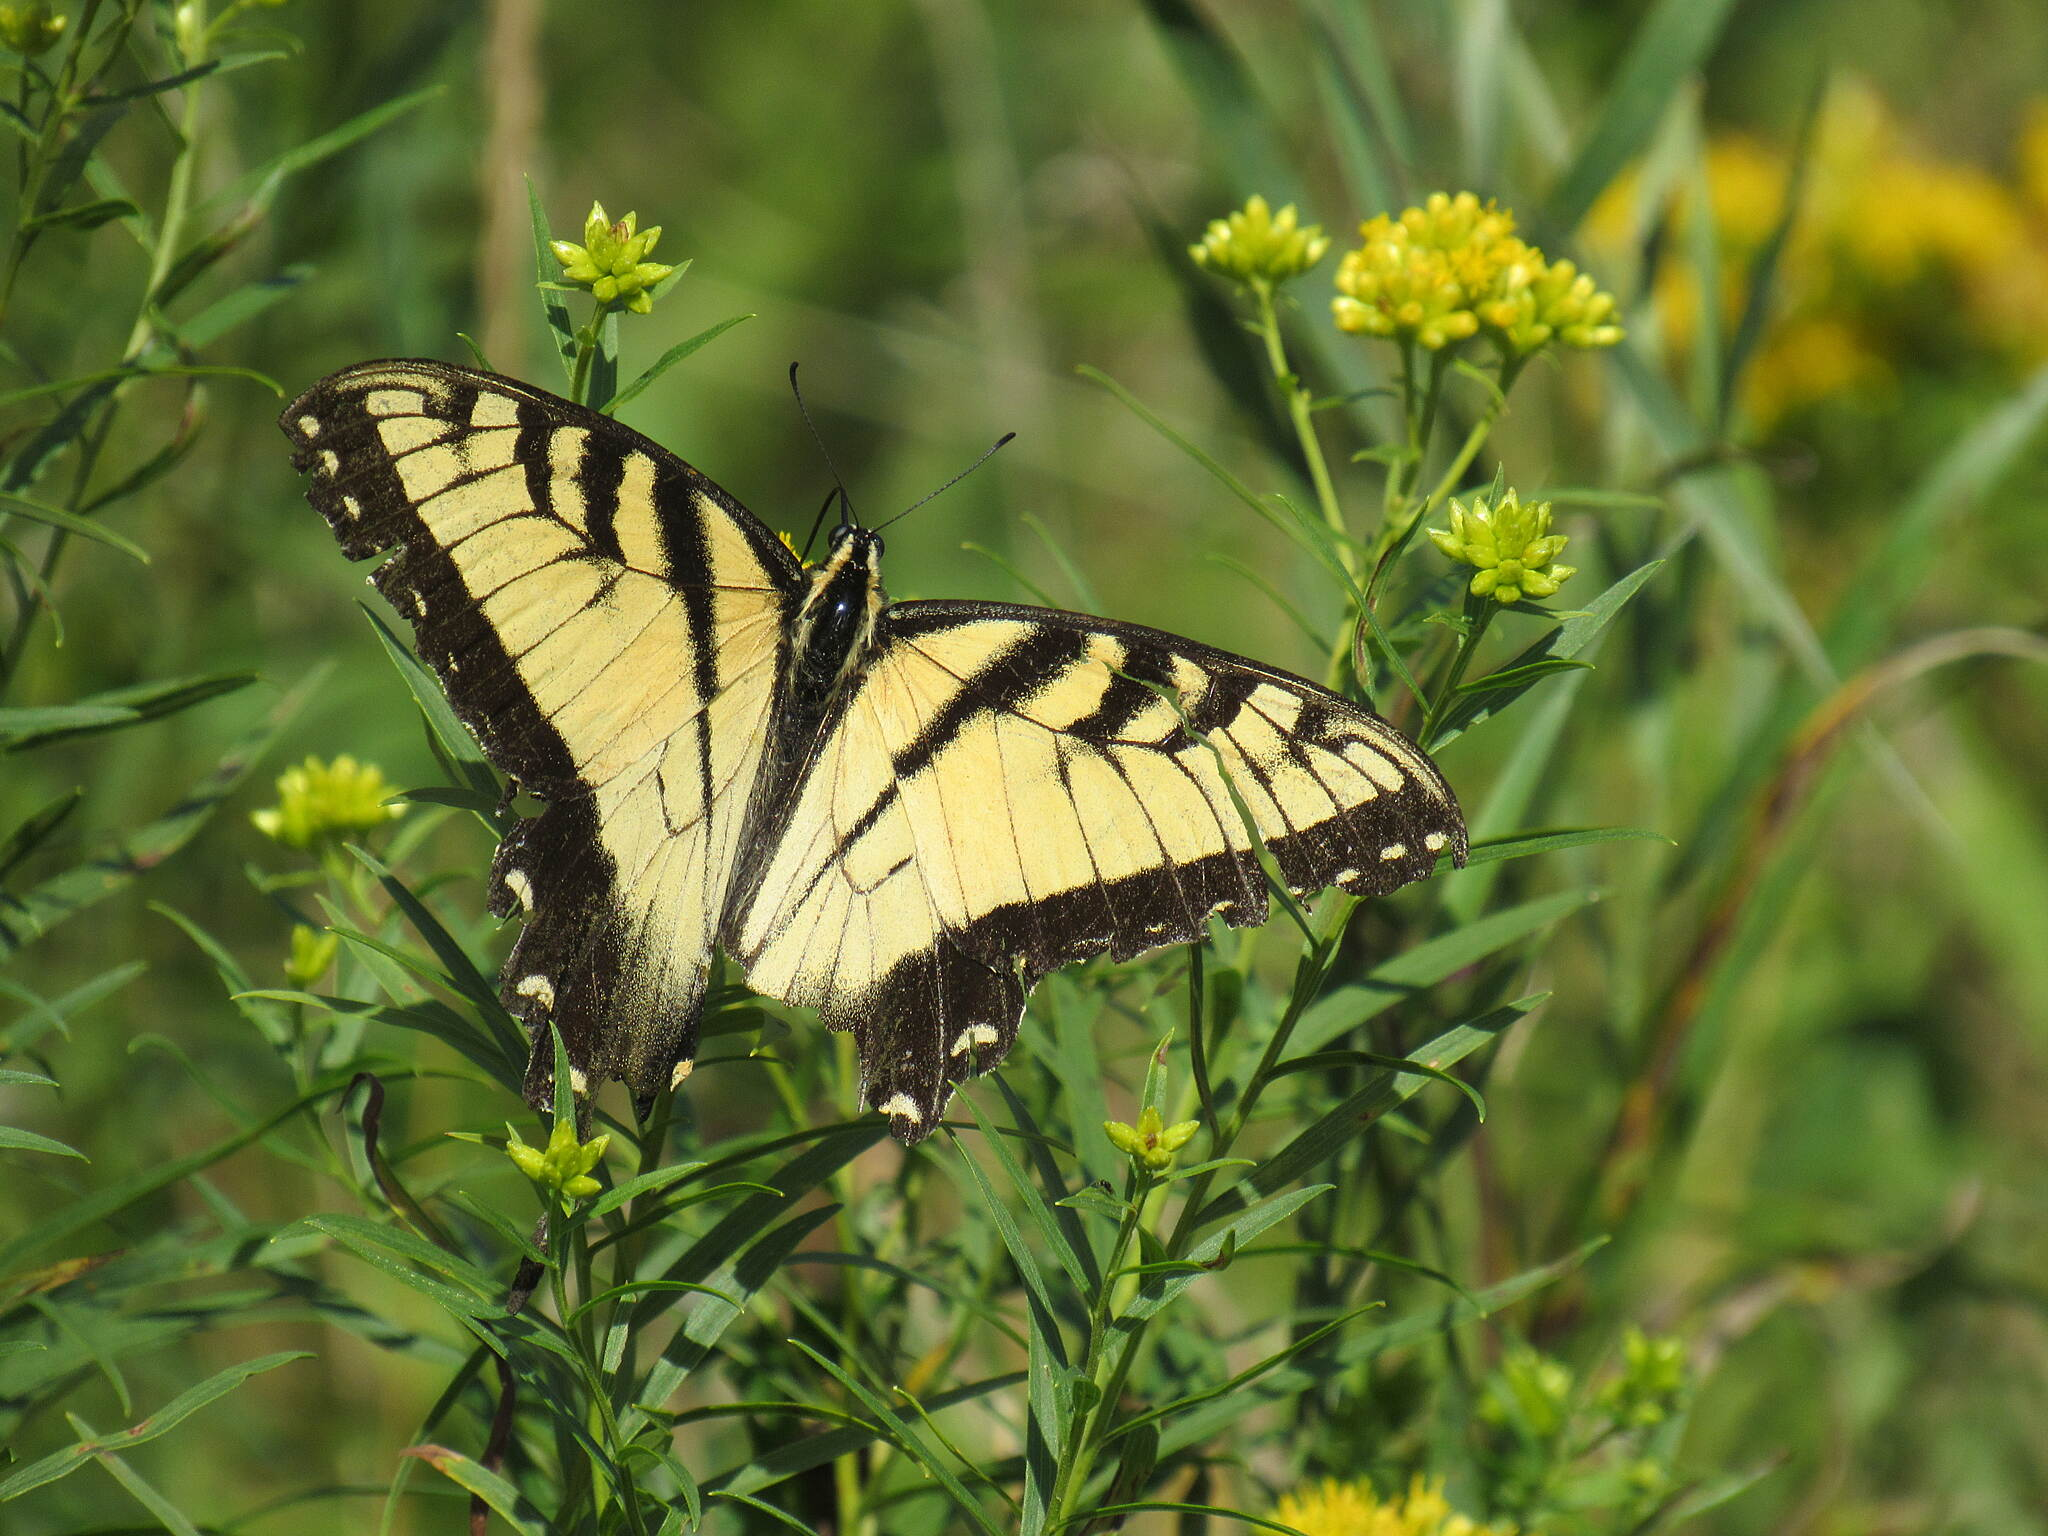 Sheboygan Interurban Trail Tiger swallowtail on mustard These beauties were flitting around everywhere on this sunny September afternoon.